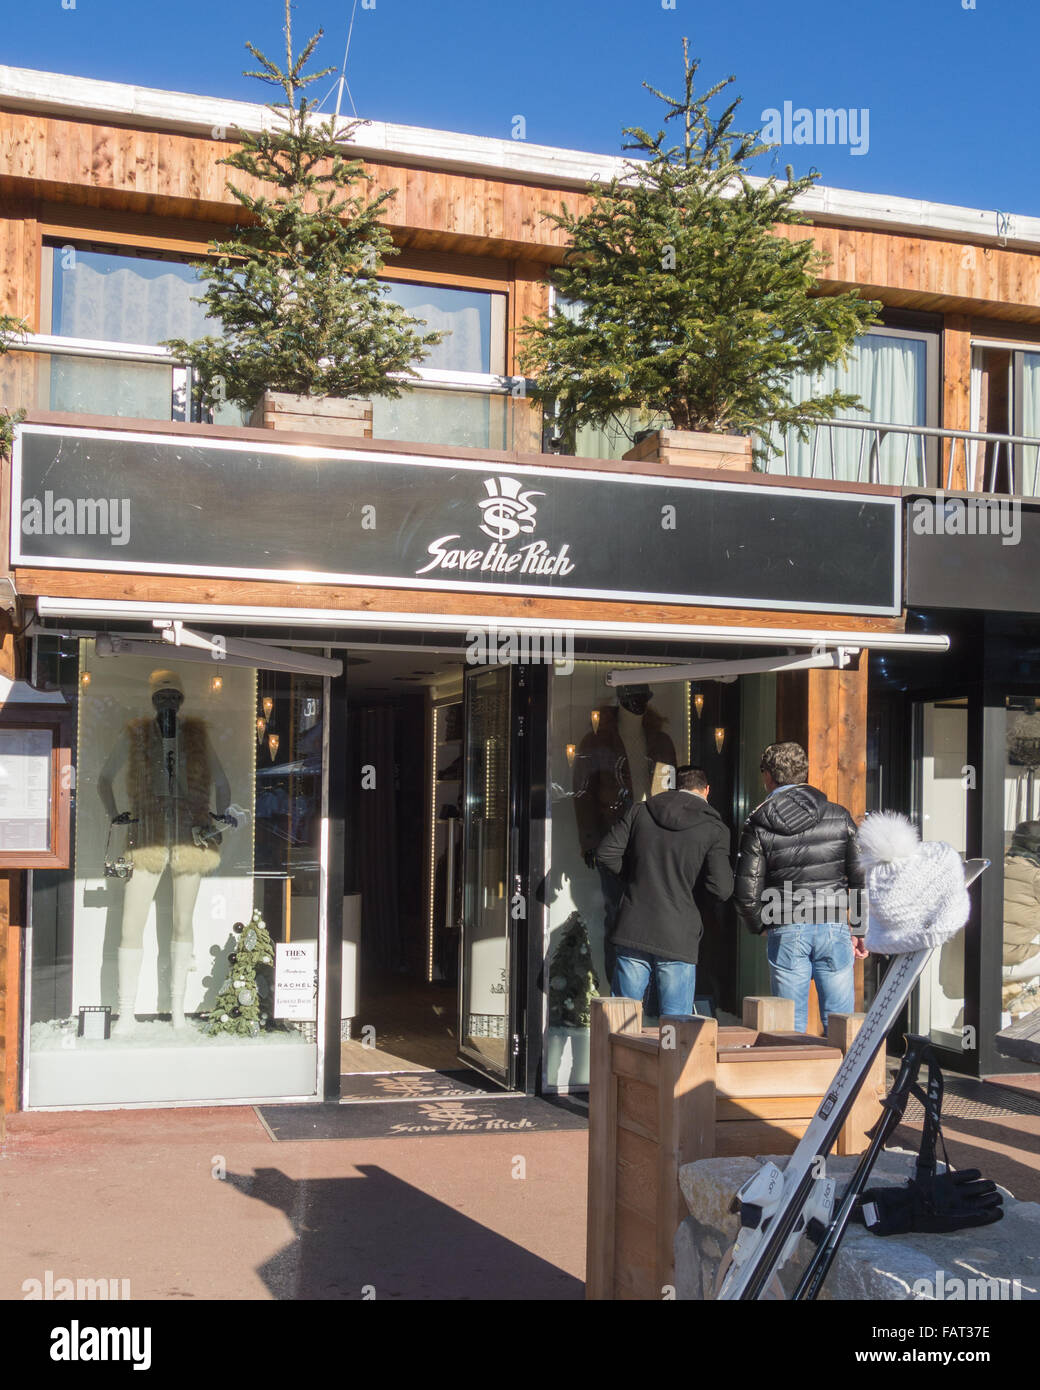 'Save the Rich' clothing shop in Courchevel 1850 luxury ski resort, France - Stock Image